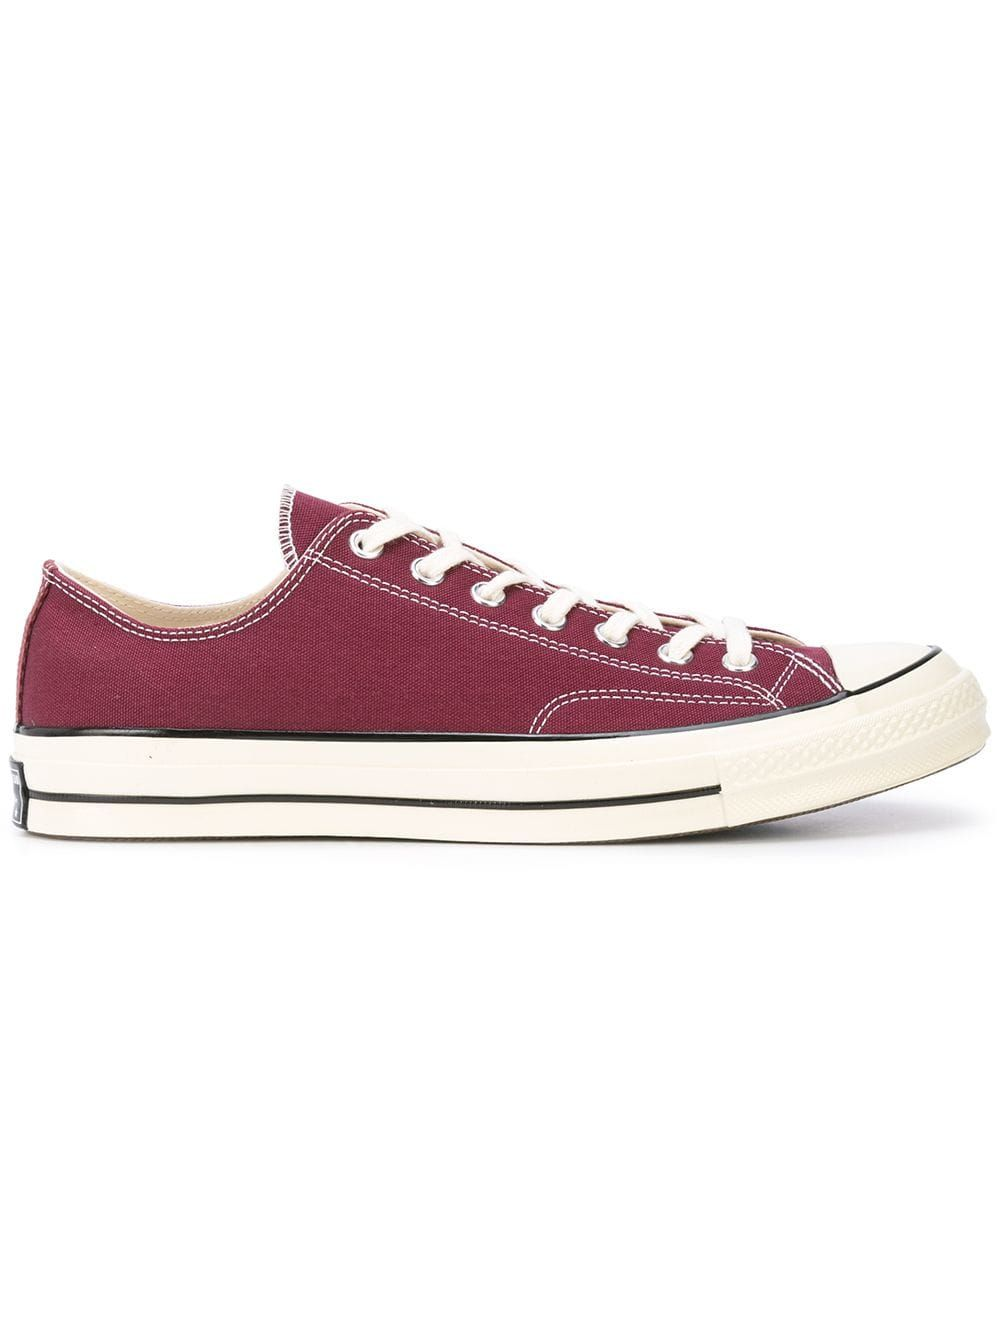 a3c216329b0 CONVERSE CONVERSE CHUCK TAYLOR ALL STAR 1970S SNEAKERS - RED. #converse # shoes